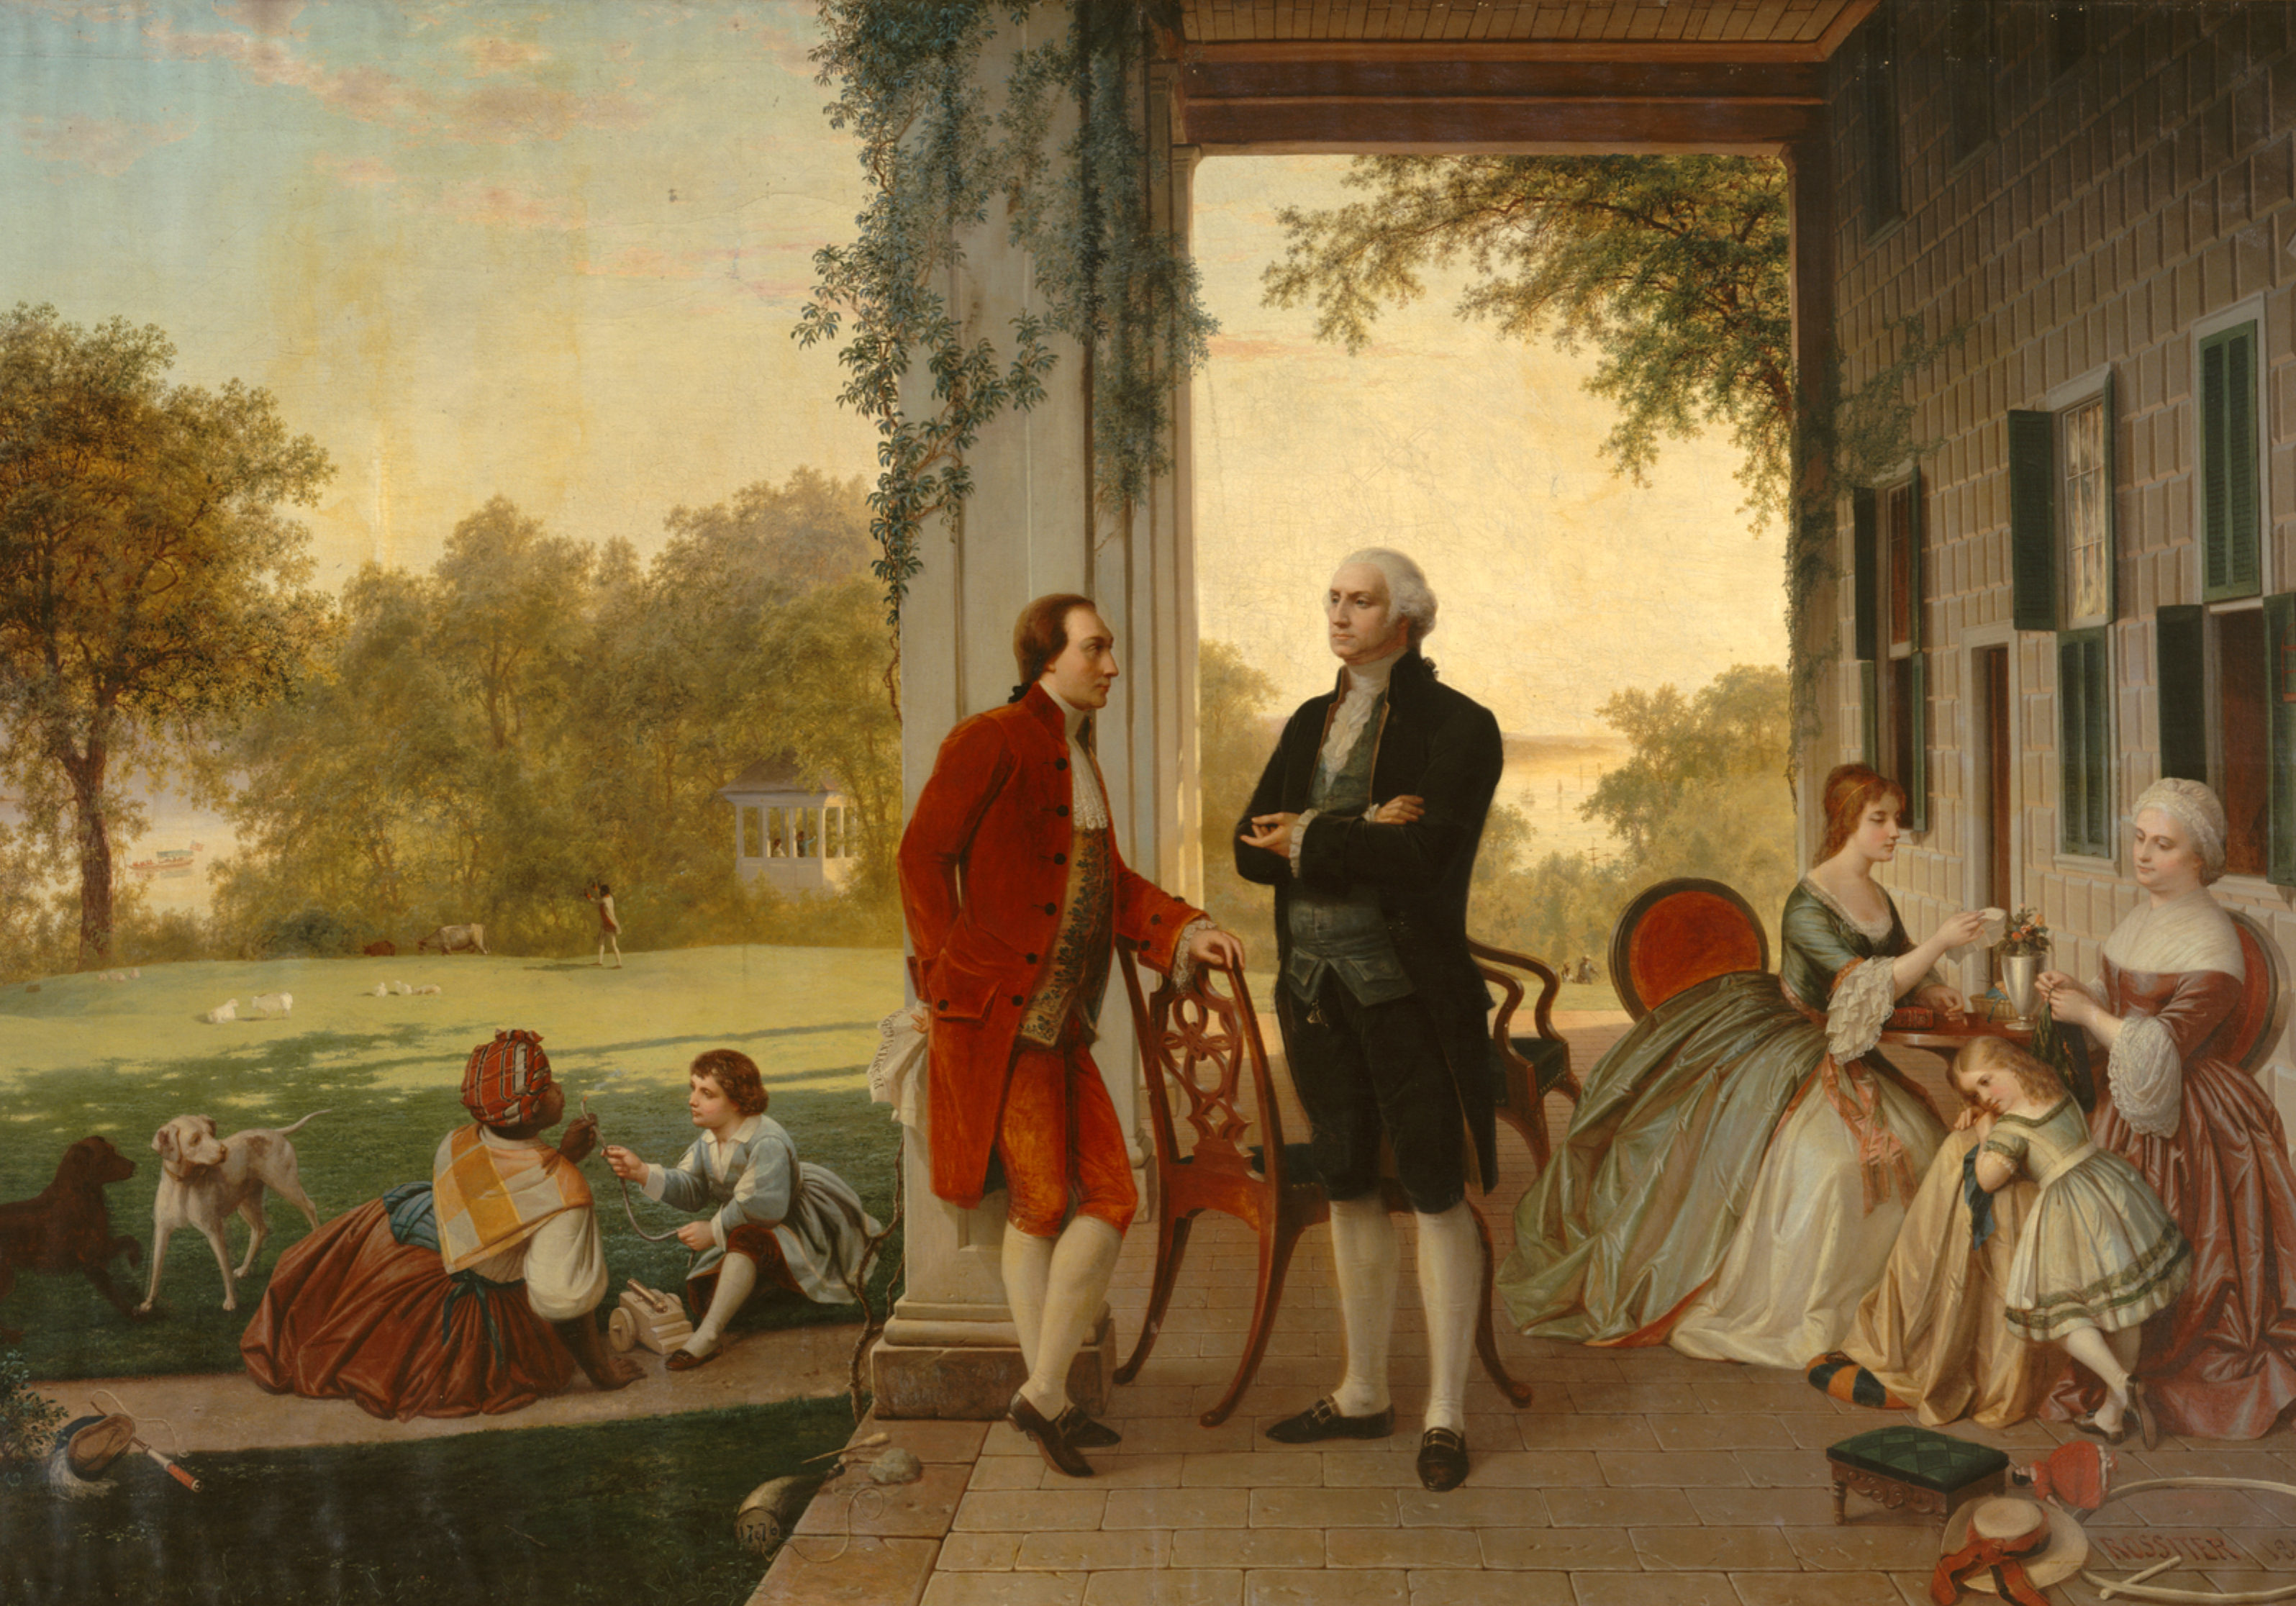 Washington_and_Lafayette_at_Mount_Vernon,_1784_by_Rossiter_and_Mignot,_1859